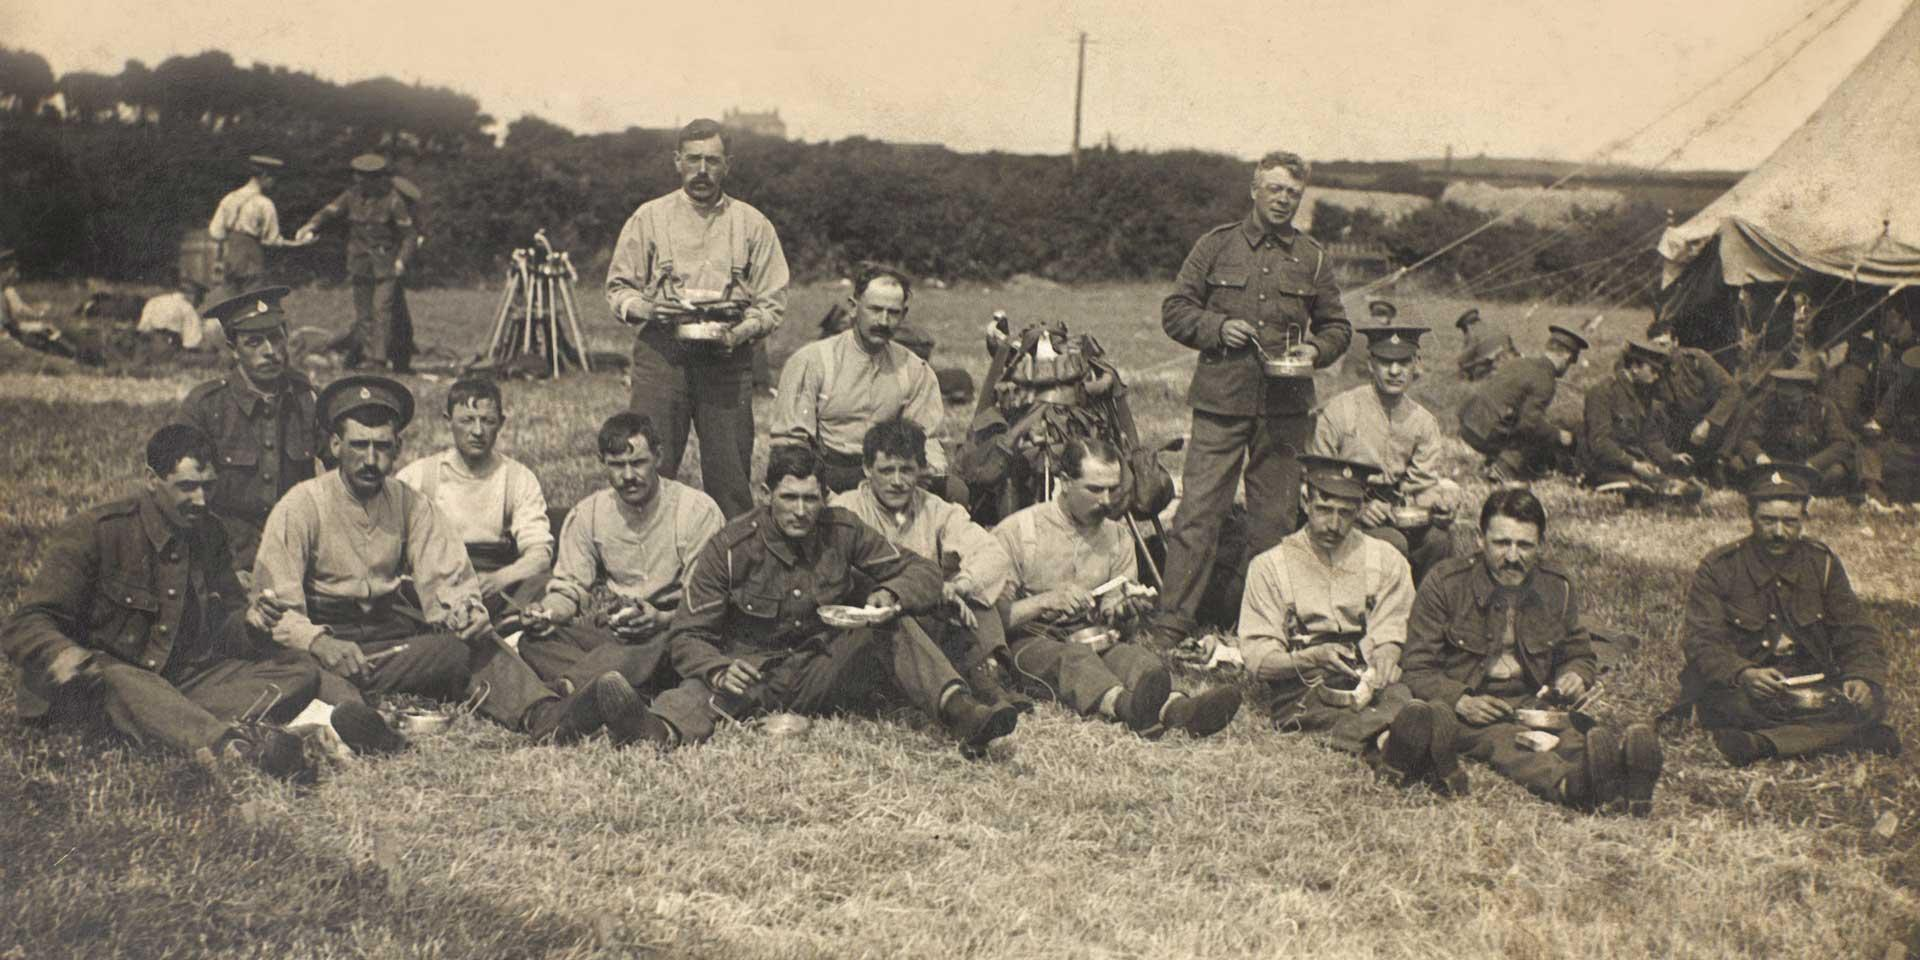 Members of the 10th (Prince of Wales's Own Royal) Hussars in camp, 1914